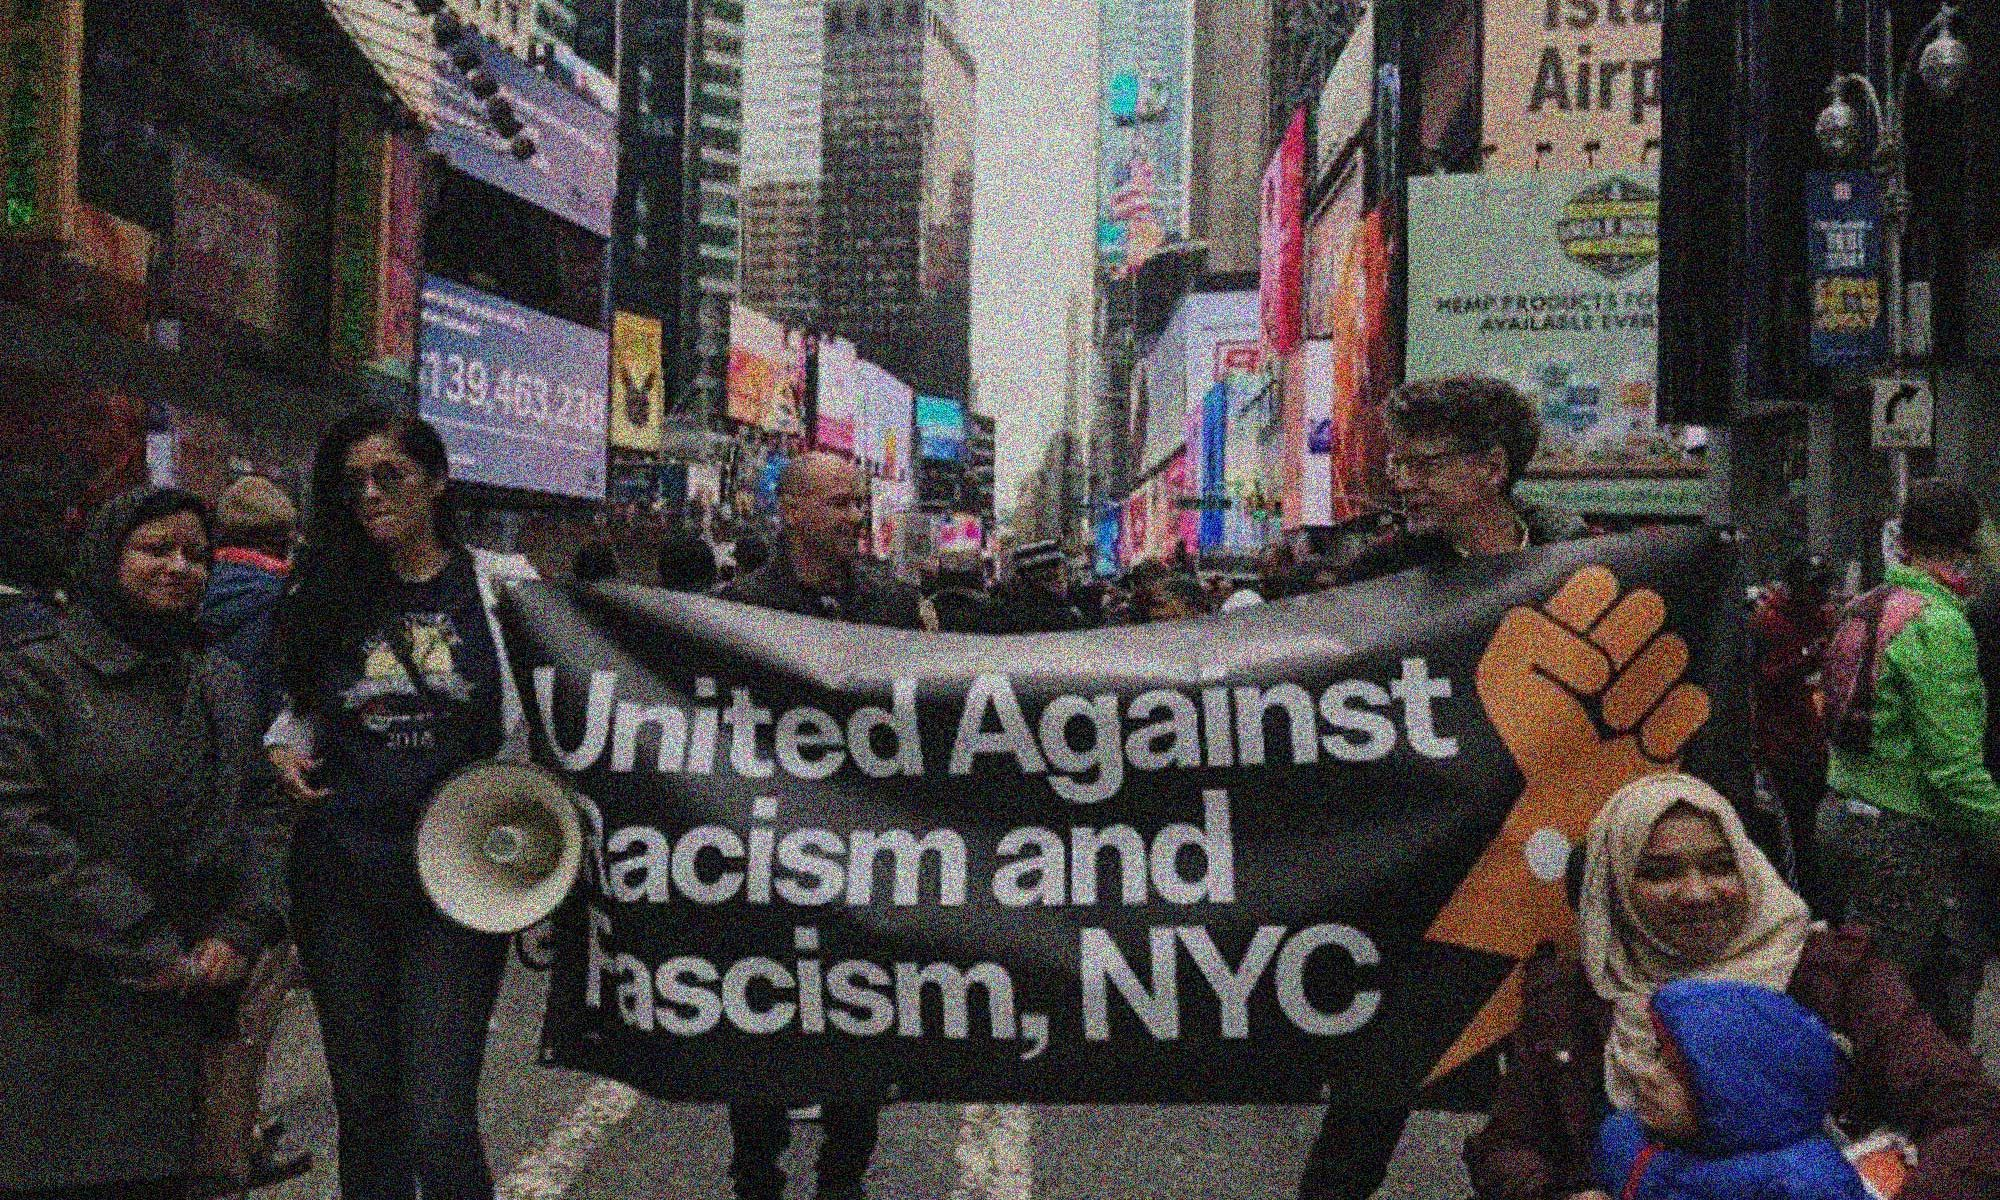 World Against Racism